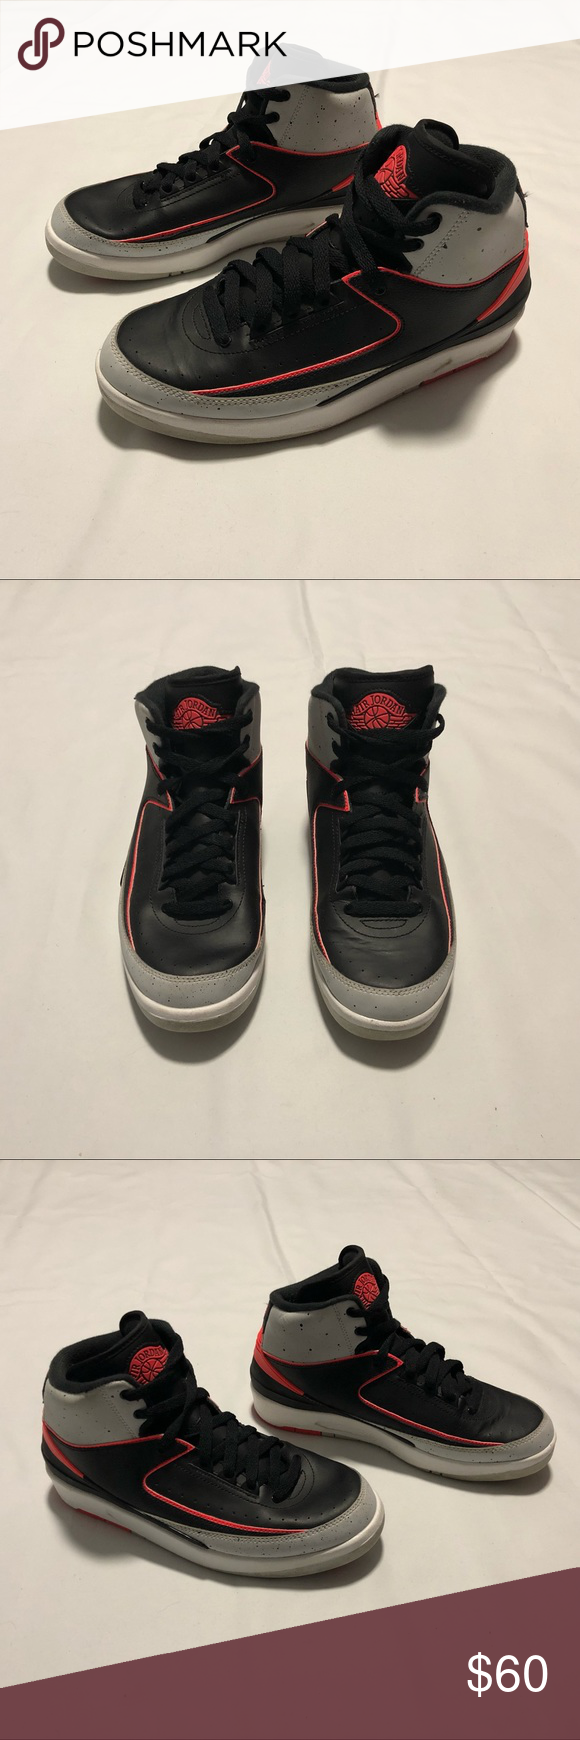 a56b4ed19ee3 Air Jordan 2 Retro BG (GS)